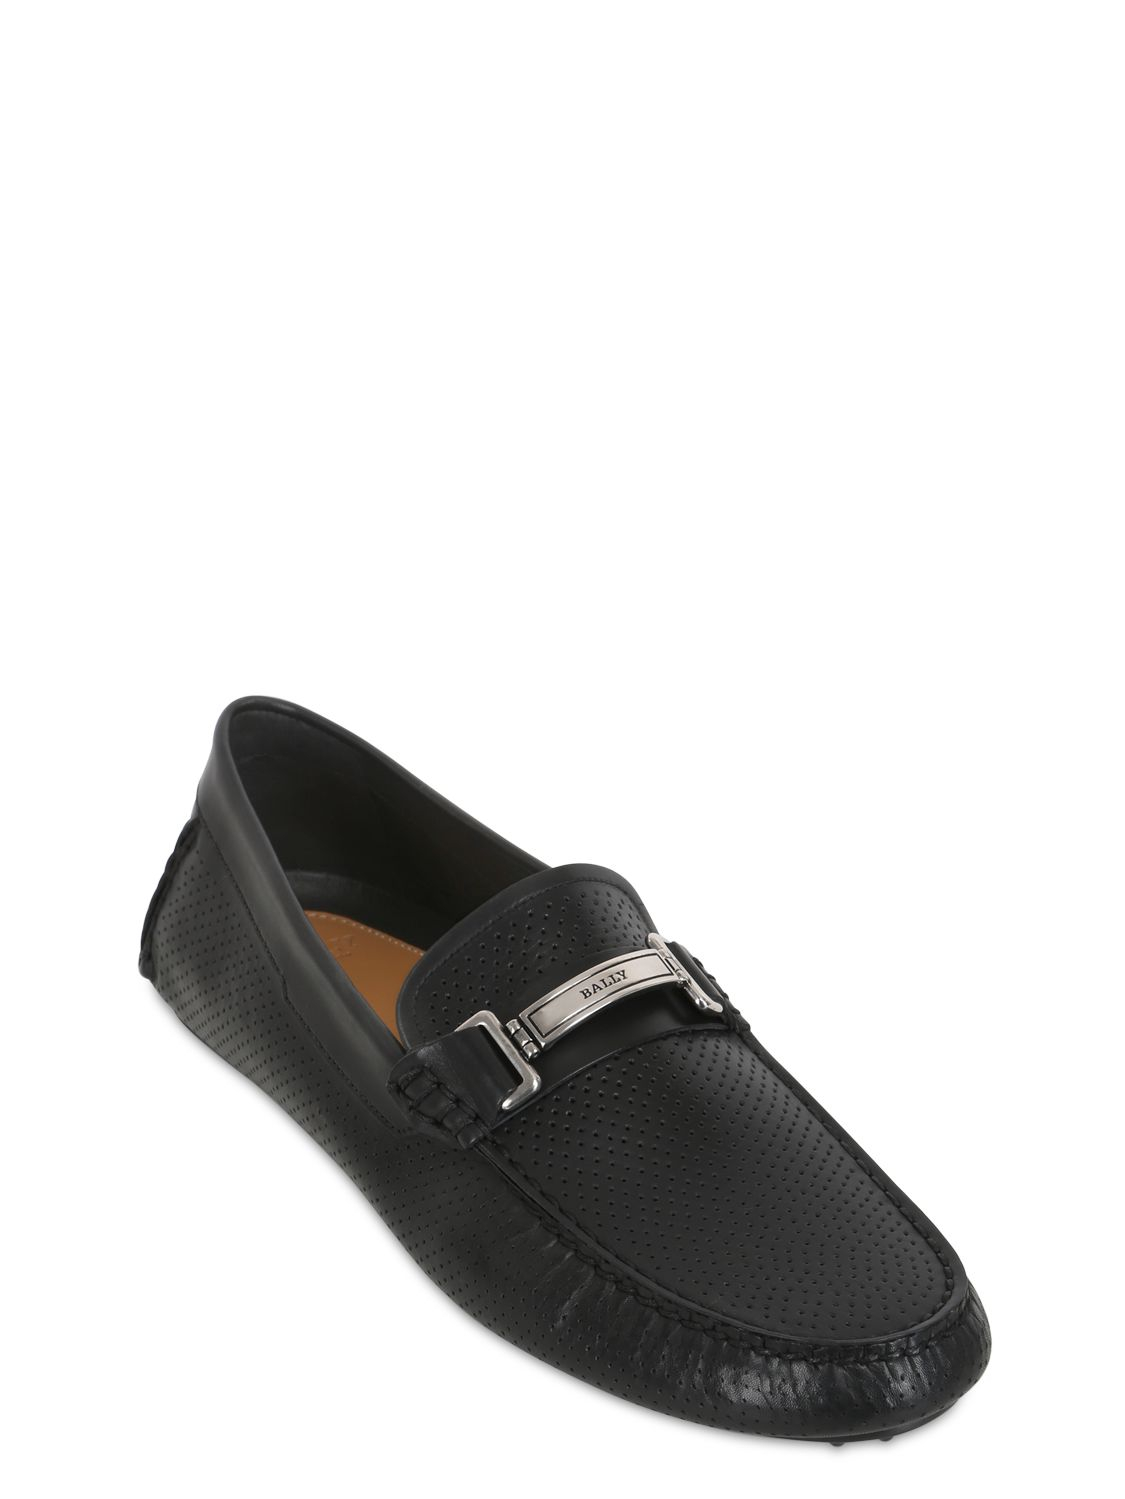 Bally Suit Shoes 006